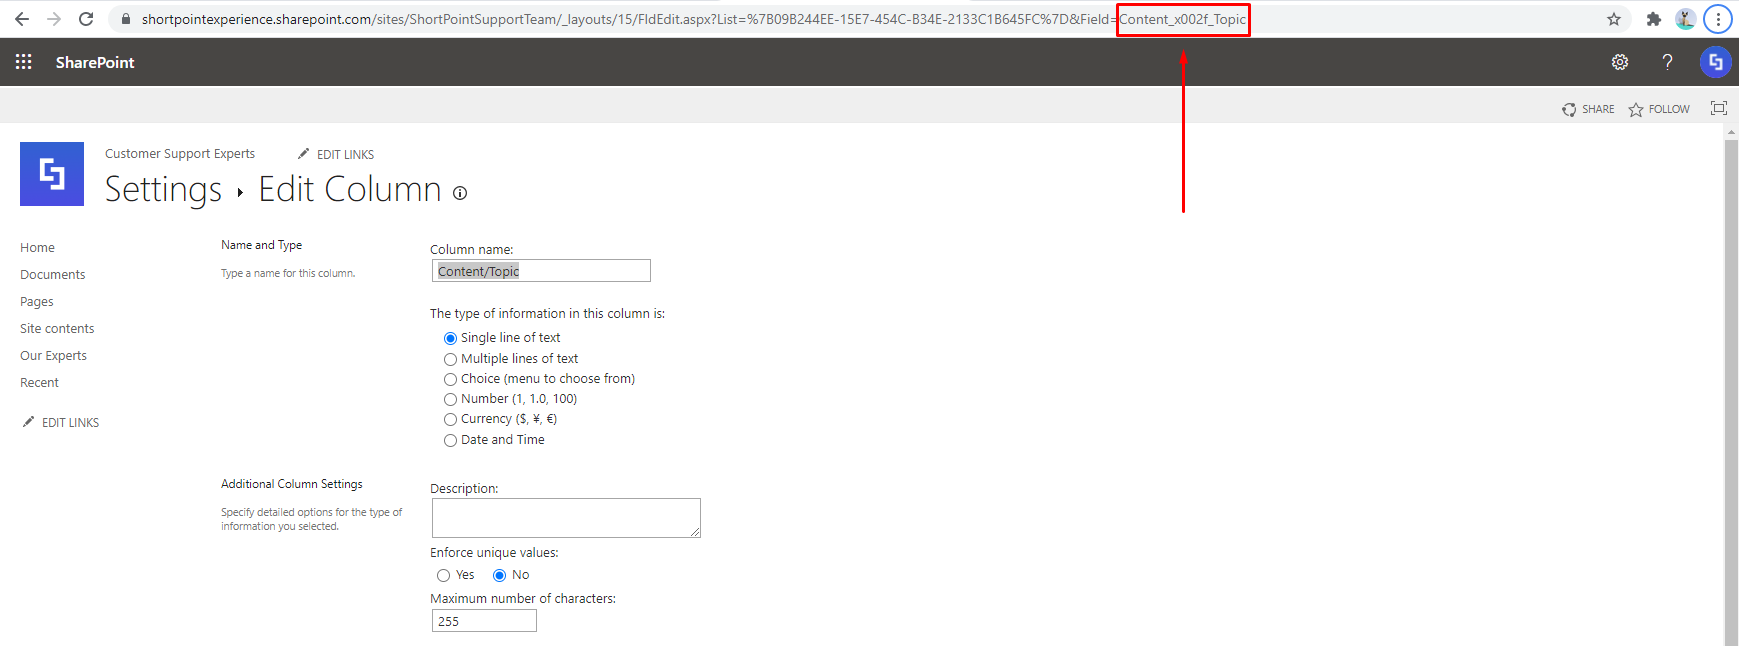 collect internal name from the URL